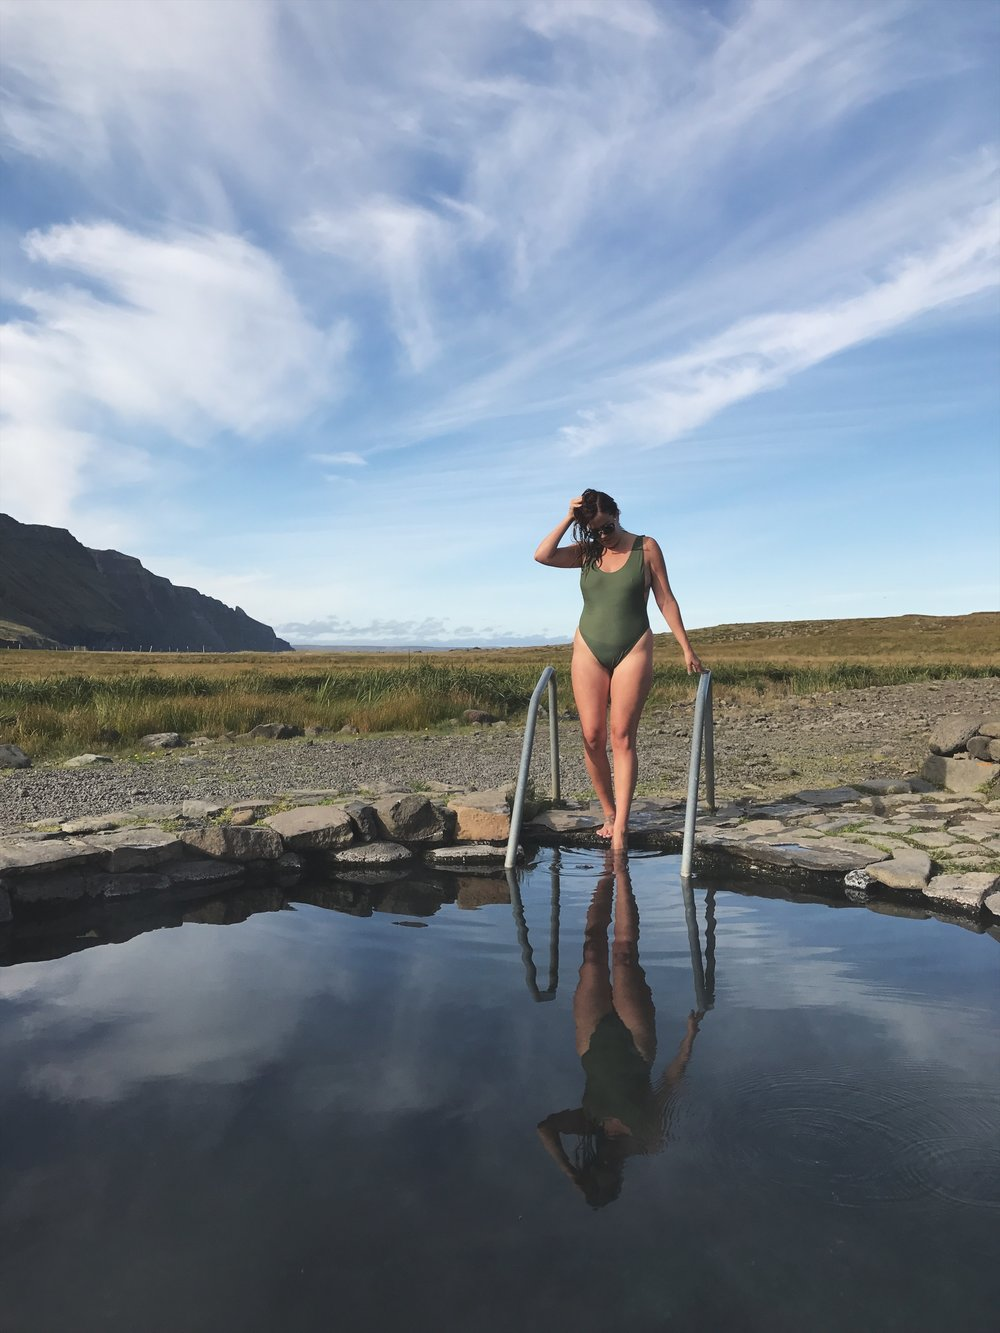 Geothermal pools (or hot pots) are found all over Iceland, you definitely want to pack a swimsuit!